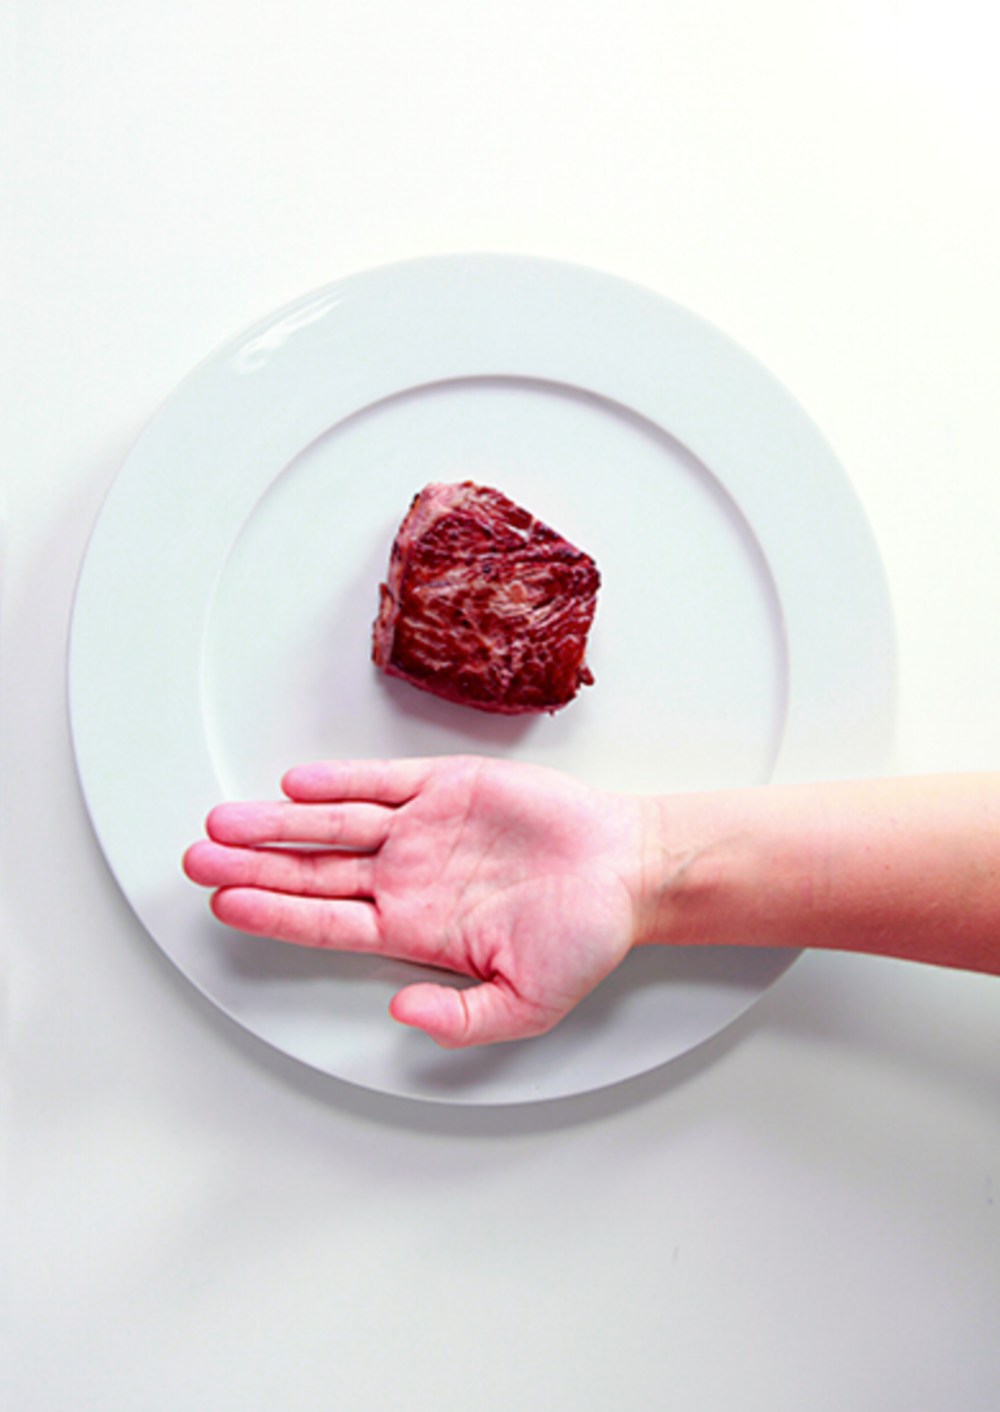 6. CONTROL PROTEIN - Use your hand to control your protein portion at dinner. We don't mean by lifting a spoon. Literally, take a look right now at your hand!Ladies, you're going to look at the size of your palm from the base of your fingers and thumb, all of the way around in a circle. When you make your plate, take a portion of protein (turkey, ham, etc) the size and thickness of your thumb and slap that stuff down on your plate. Gentlemen, you get two palm-sized portions.If you really love Thanksgiving day turkey like I do, and you made sure to follow point #3 above and did some kind of exercise, go ahead and add another 1/2 of your palm of protein. BAM.